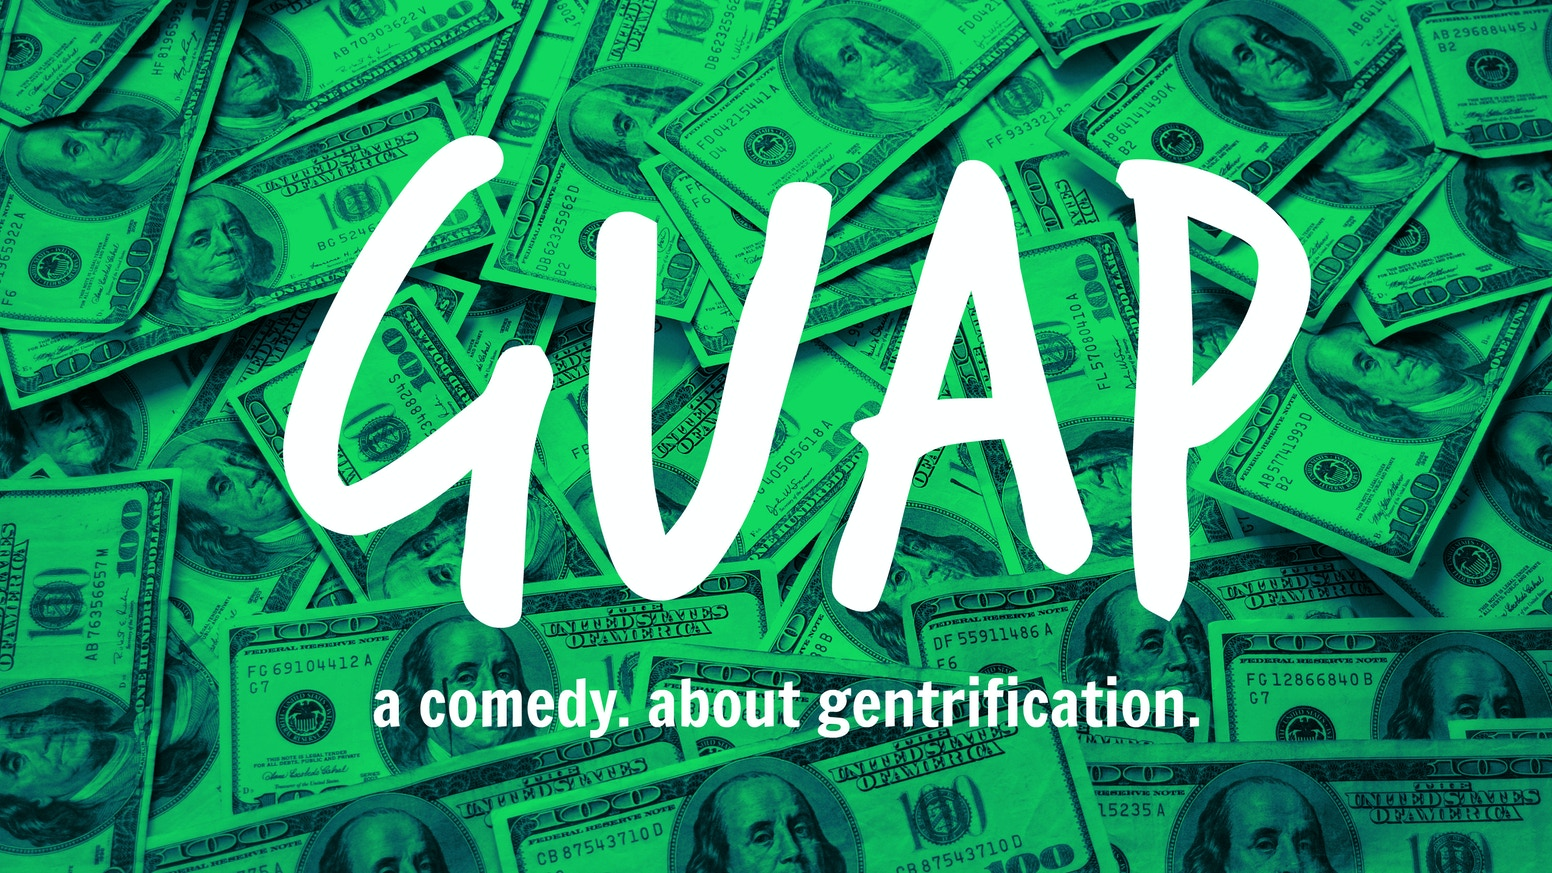 A quirky, character-driven indie comedy that slows down the rapid-fire gentrification in Washington Heights, New York City.